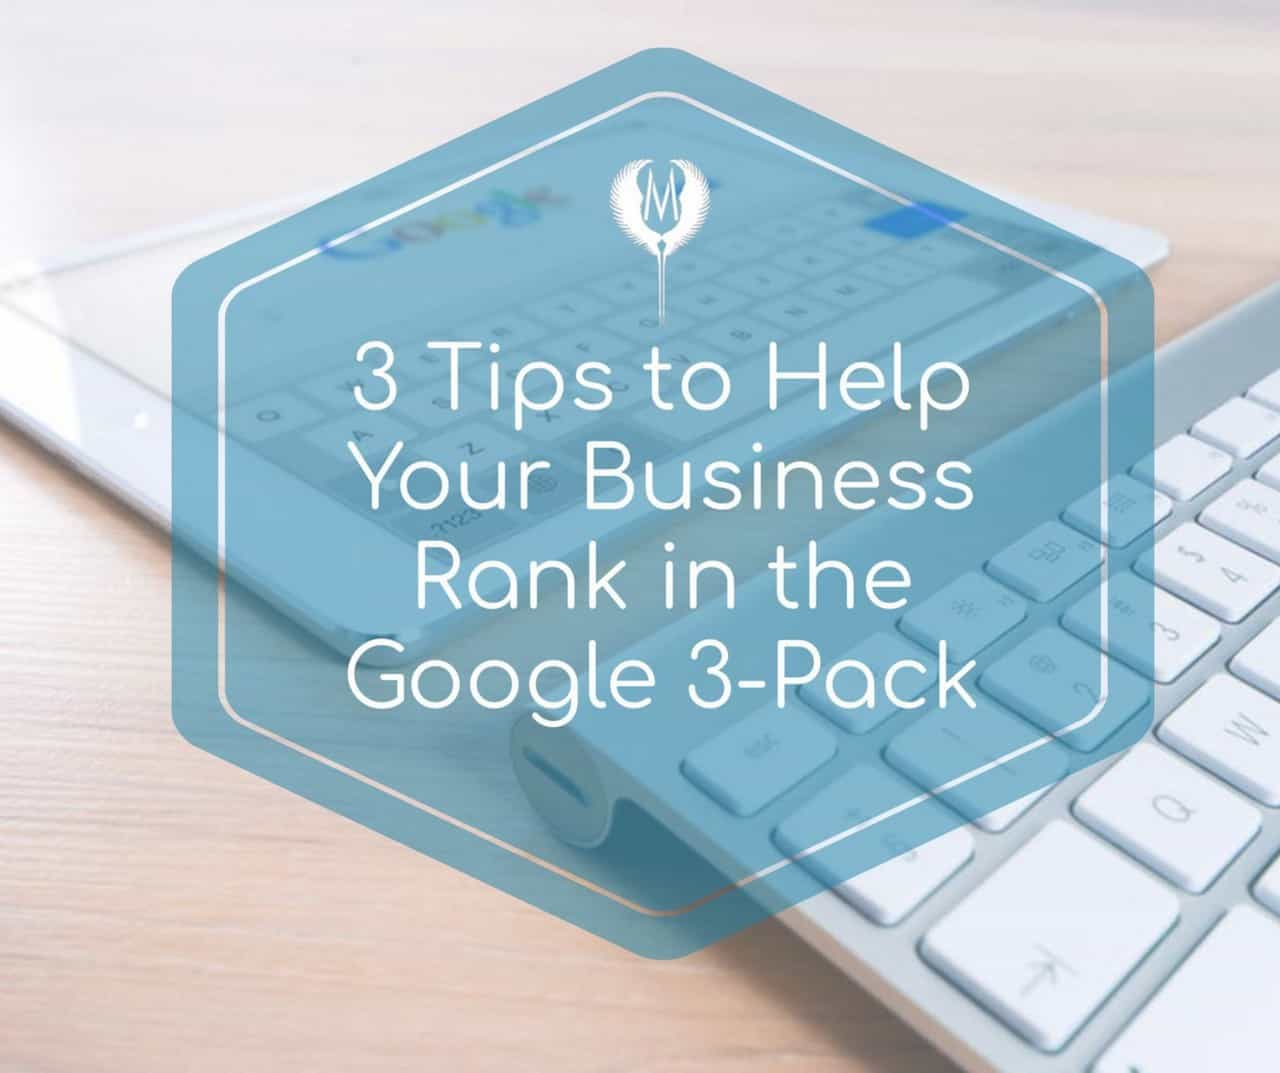 Rank your business Google 3-pack Indianapolis Marketing Agency